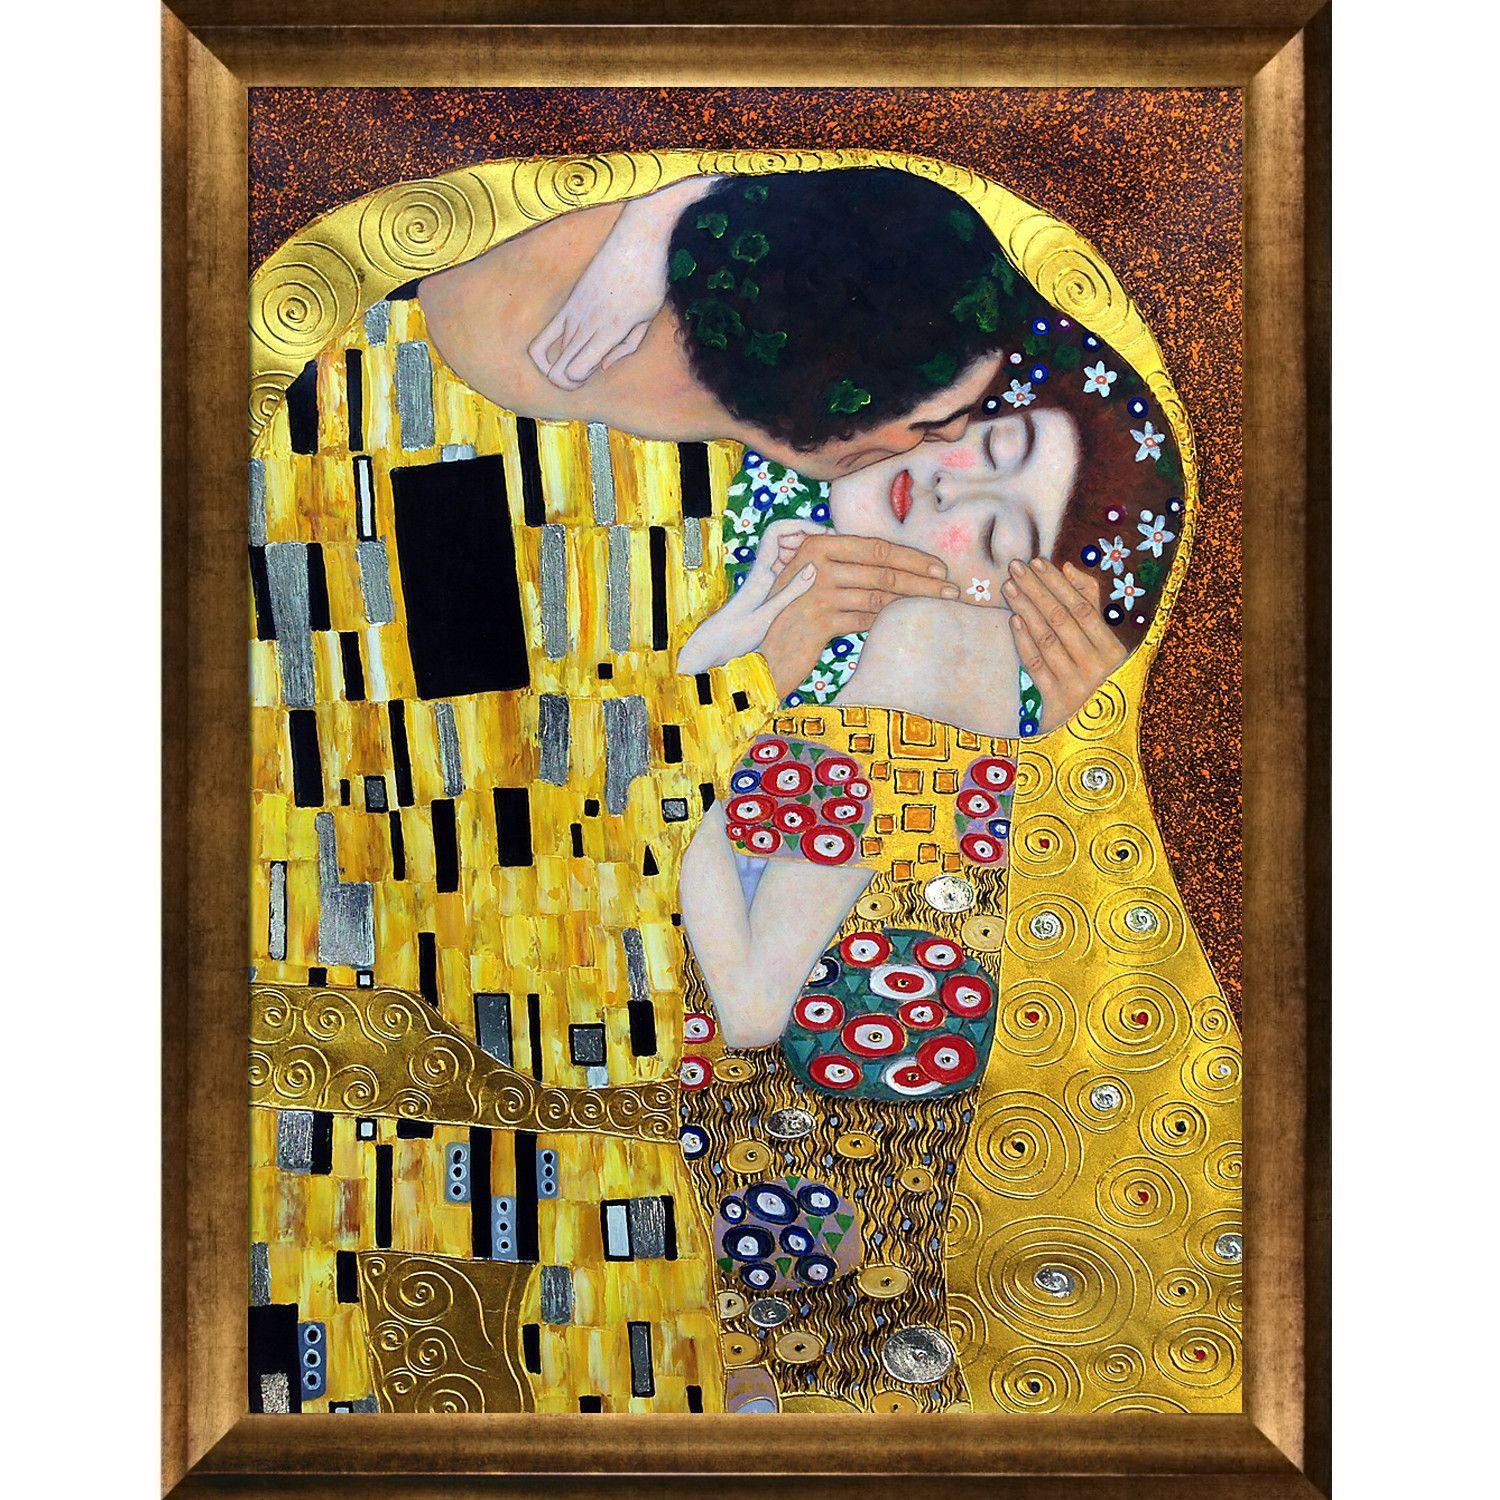 The Kiss\' by Klimt Framed Painting   Products   Pinterest   Klimt